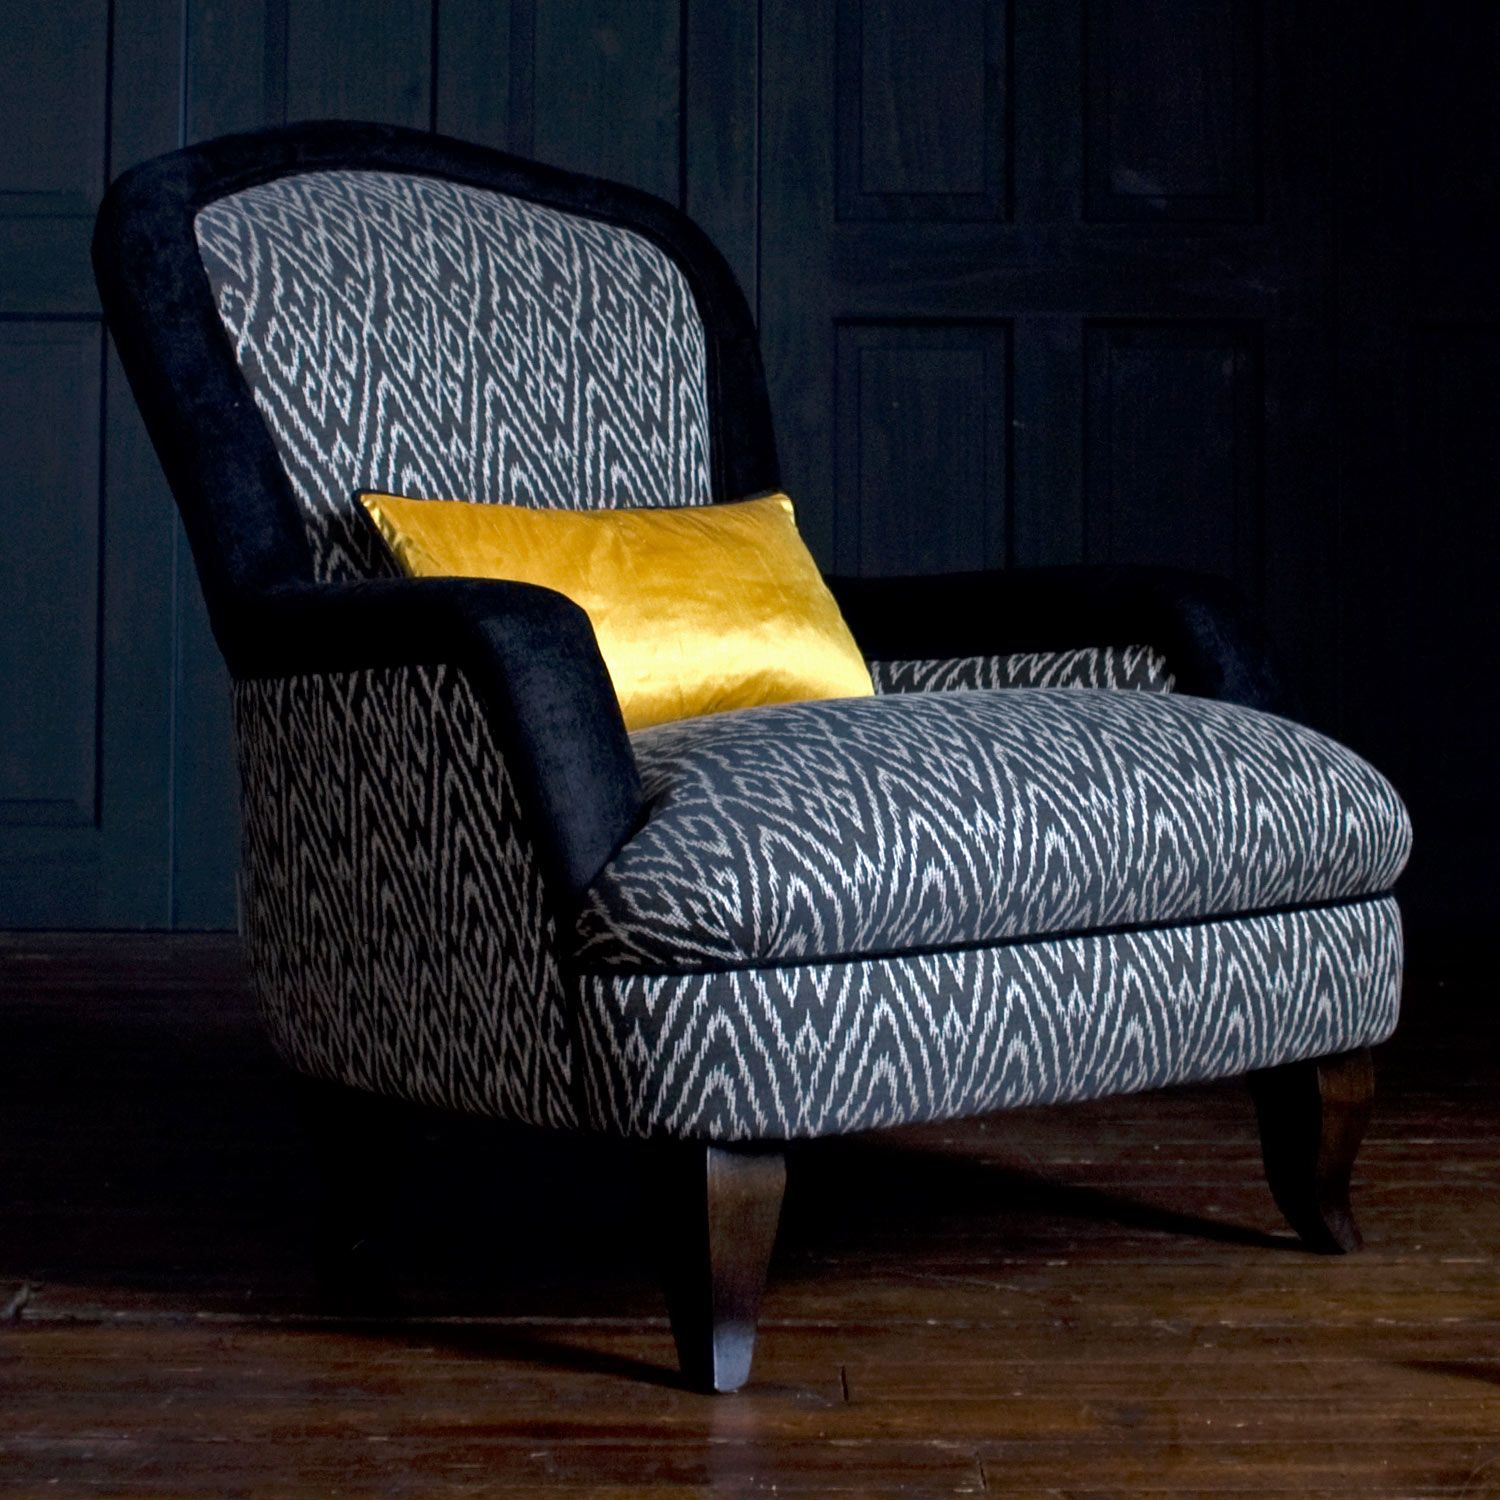 Milsom rossiters comfy chairs house design chair